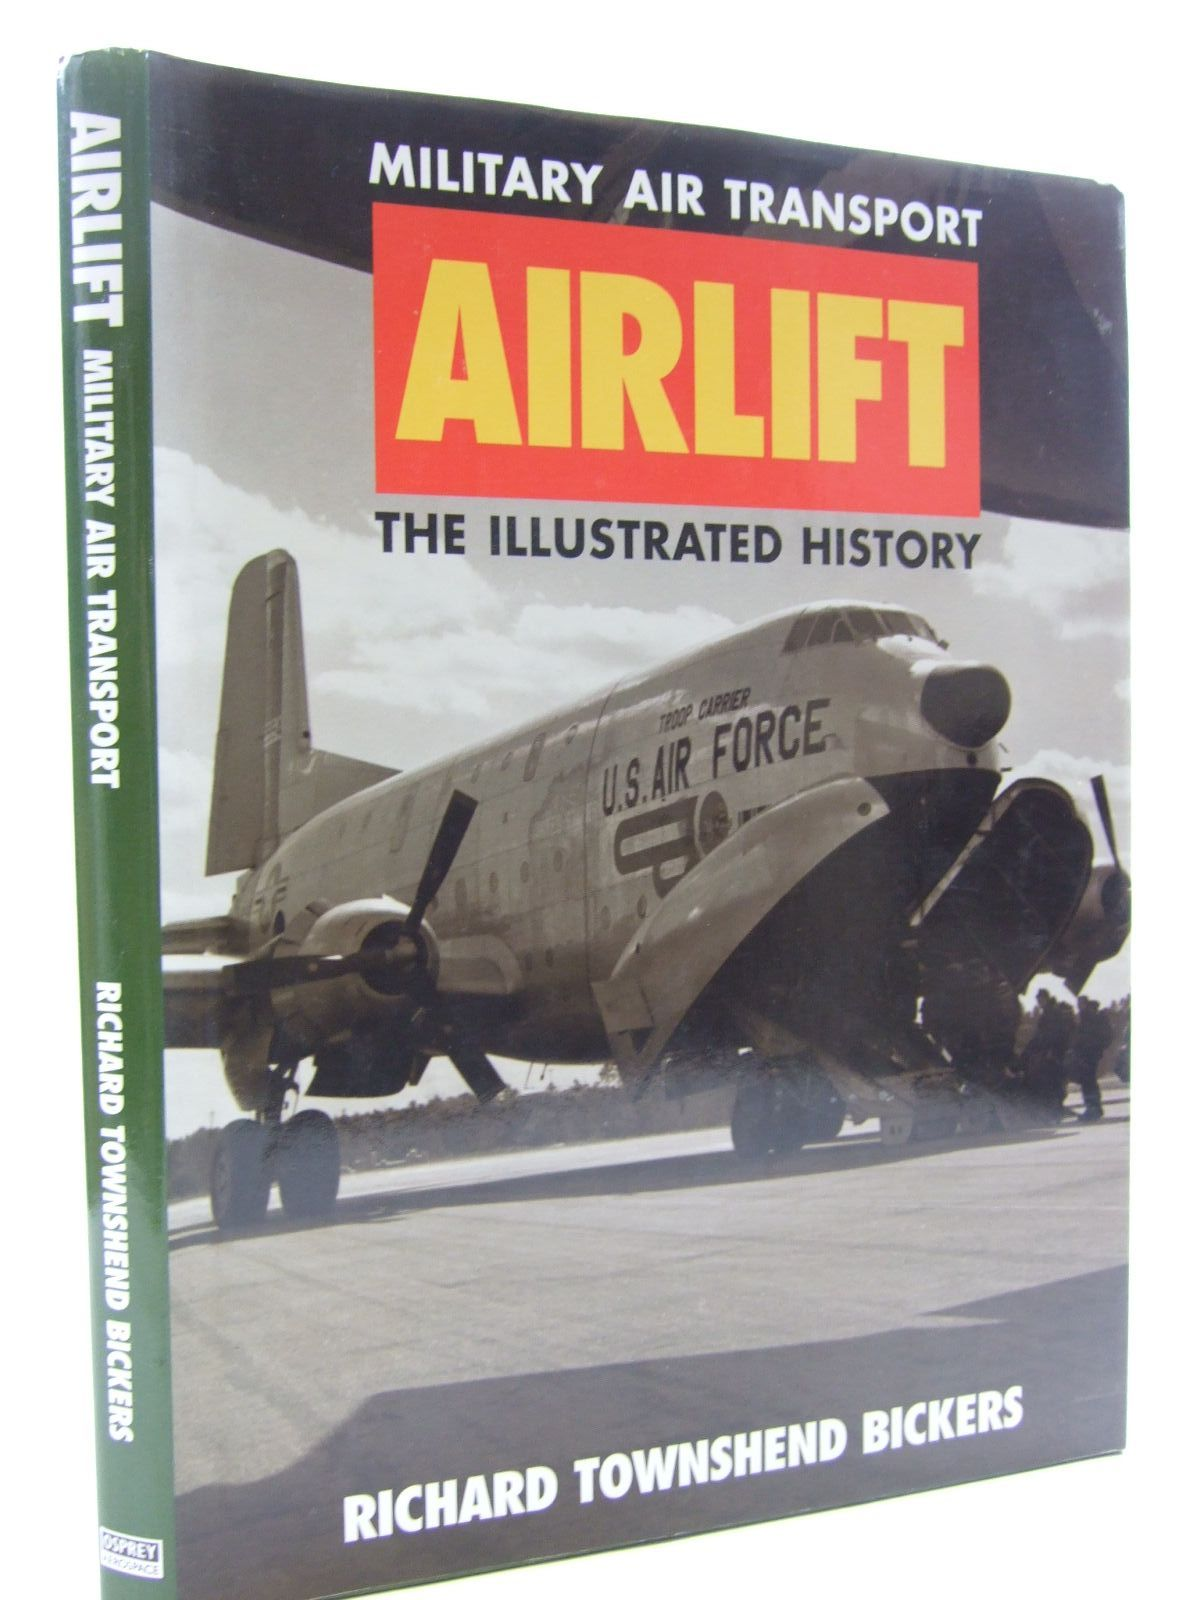 Photo of MILITARY AIR TRANSPORT AIRLIFT THE ILLUSTRATED HISTORY written by Bickers, Richard Townshend published by Osprey Aerospace (STOCK CODE: 1707868)  for sale by Stella & Rose's Books